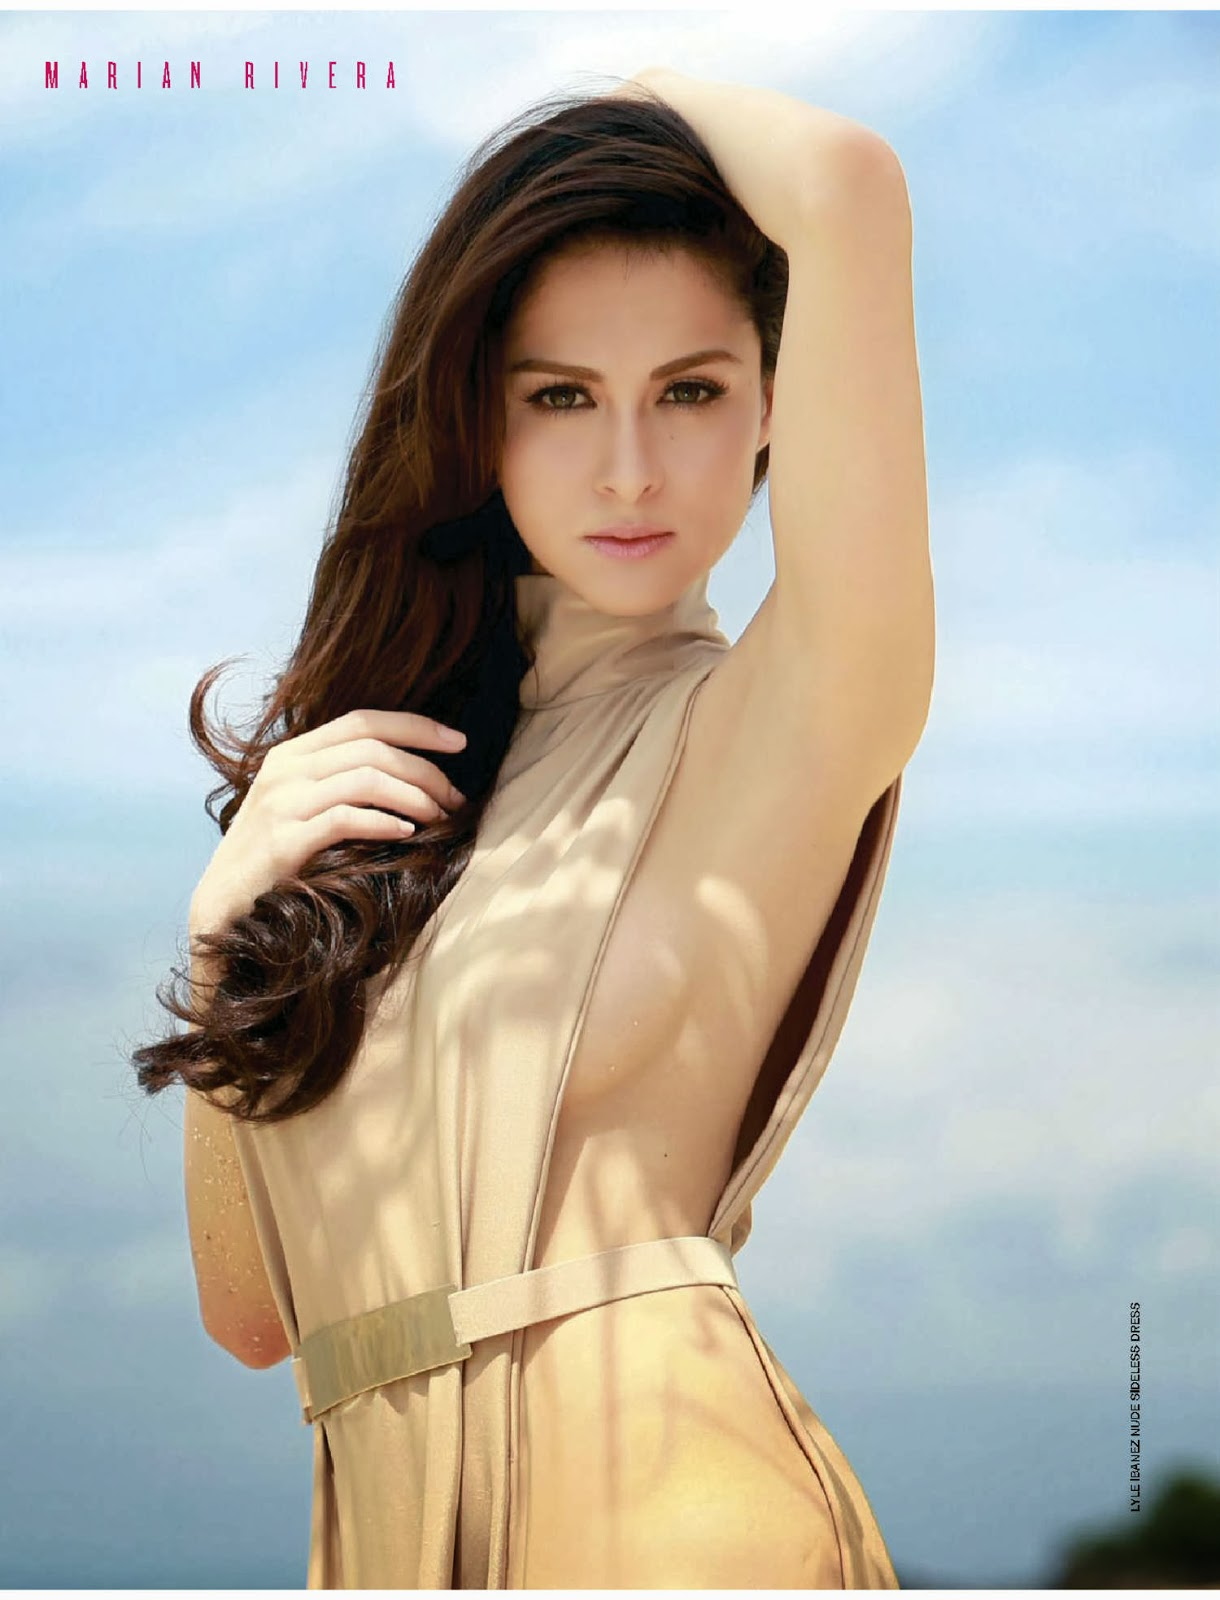 Advise you Marian rivera fhm cover sorry